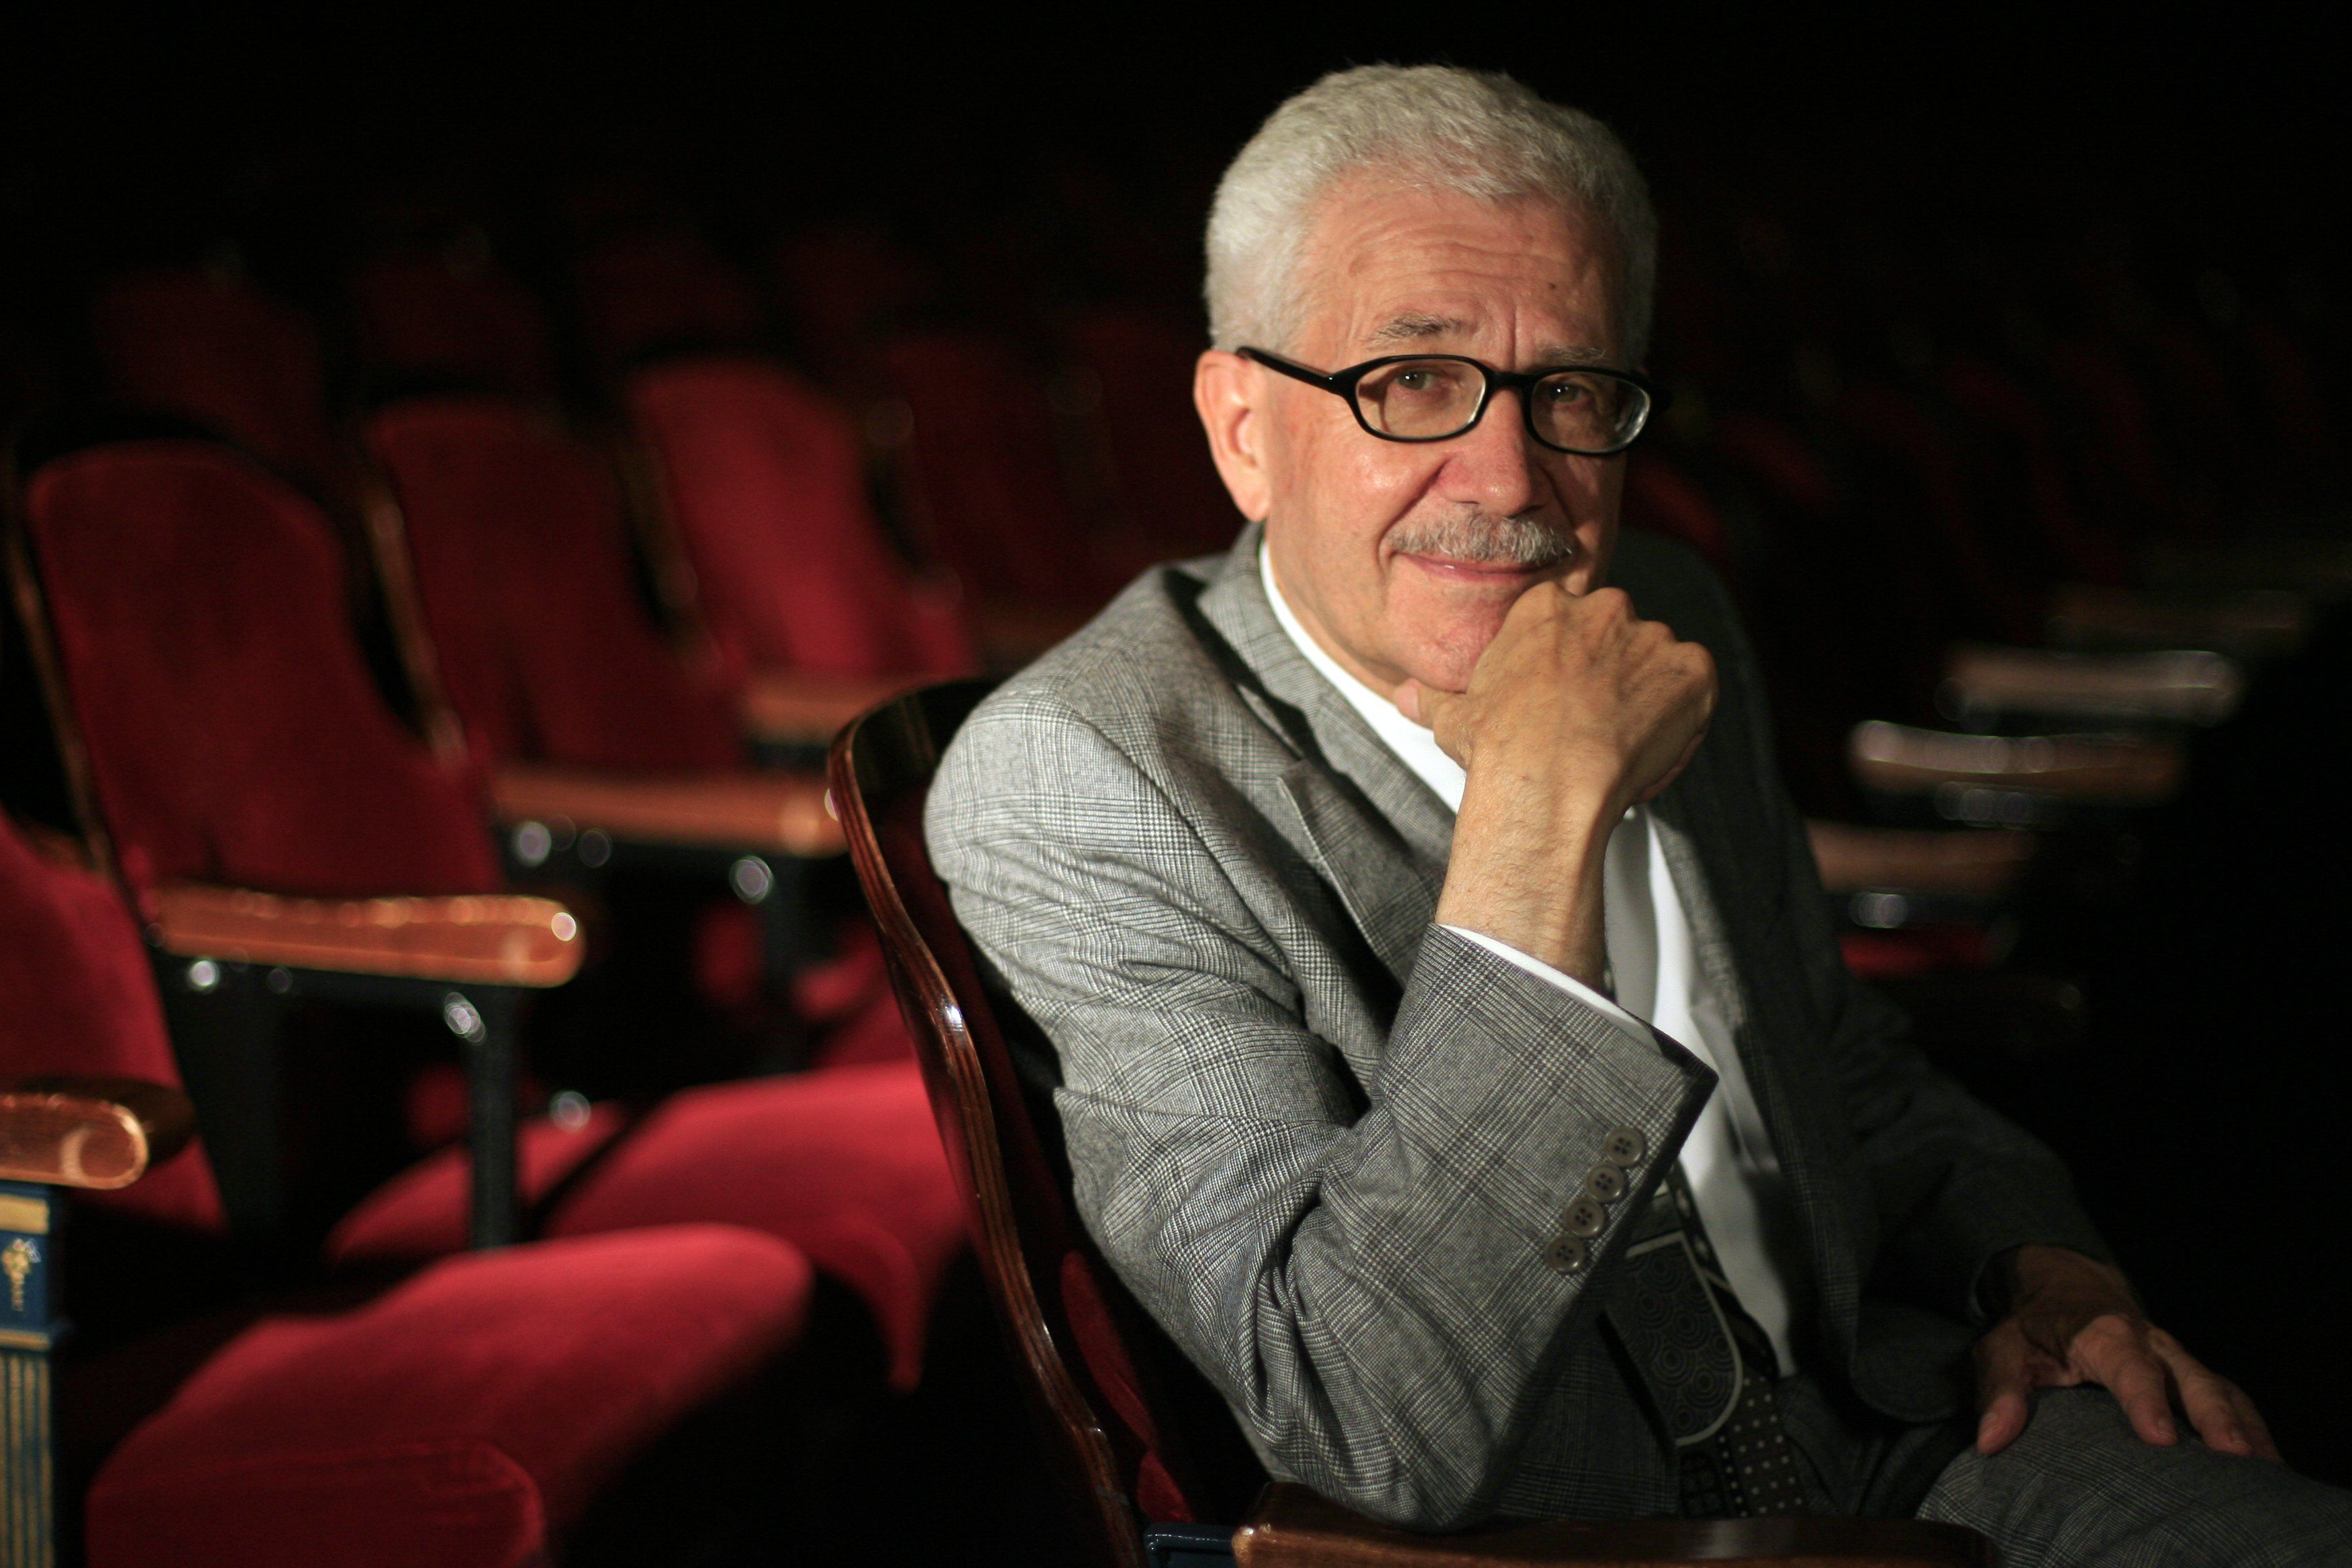 Dr. David DiChiera, founder of the Michigan Opera Theatre, is 2008's recipient of the Neal Shine Regional Cooperation Award. He is photographed in the theatre in September 2008.